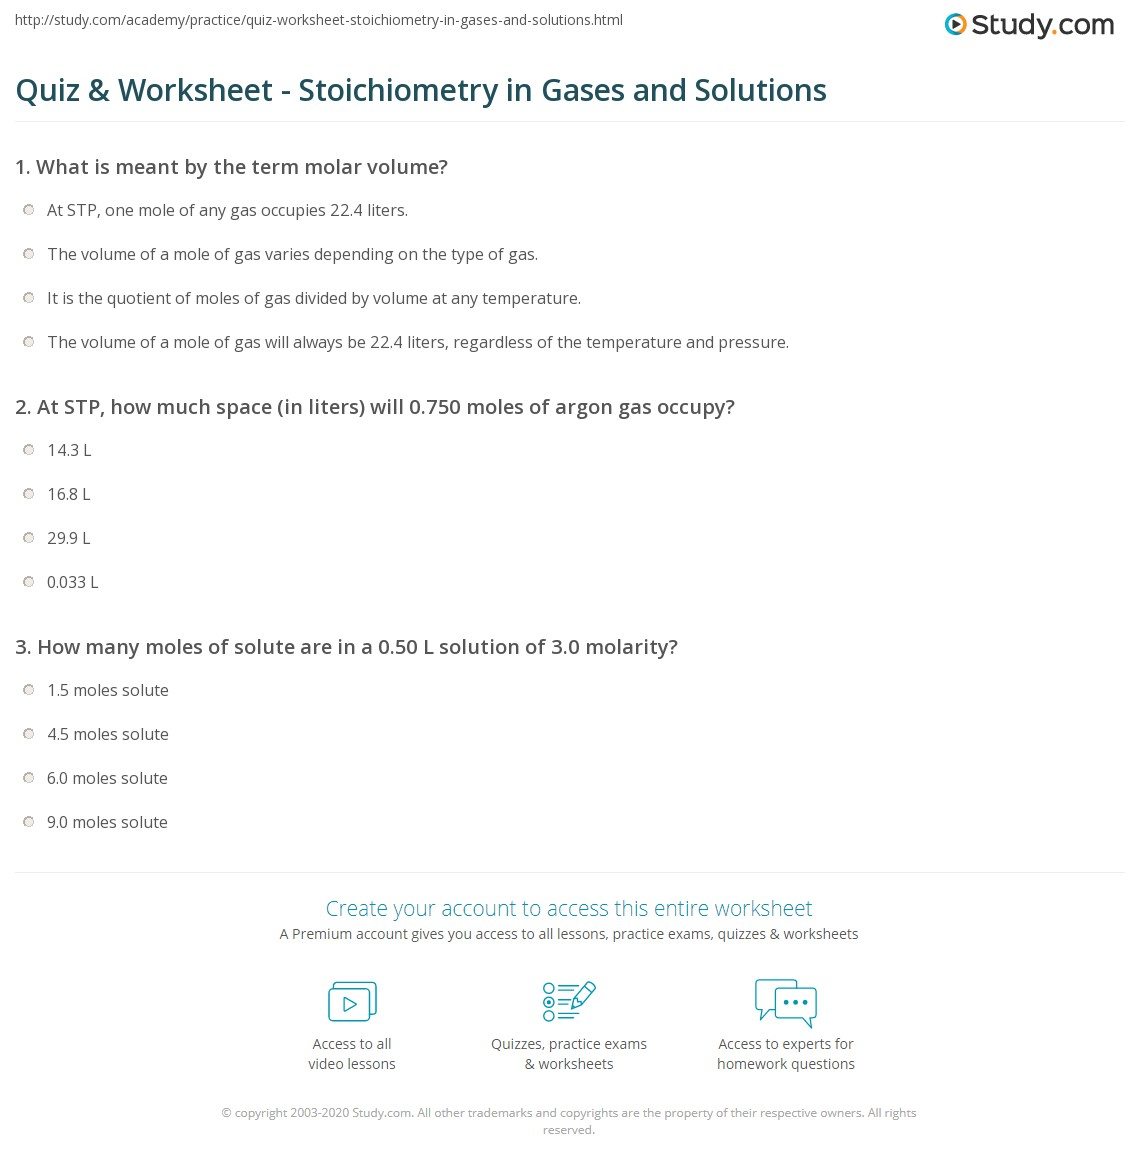 Worksheets The Mole And Volume Worksheet quiz worksheet stoichiometry in gases and solutions study com print calculating relative quantities a gas or solution worksheet